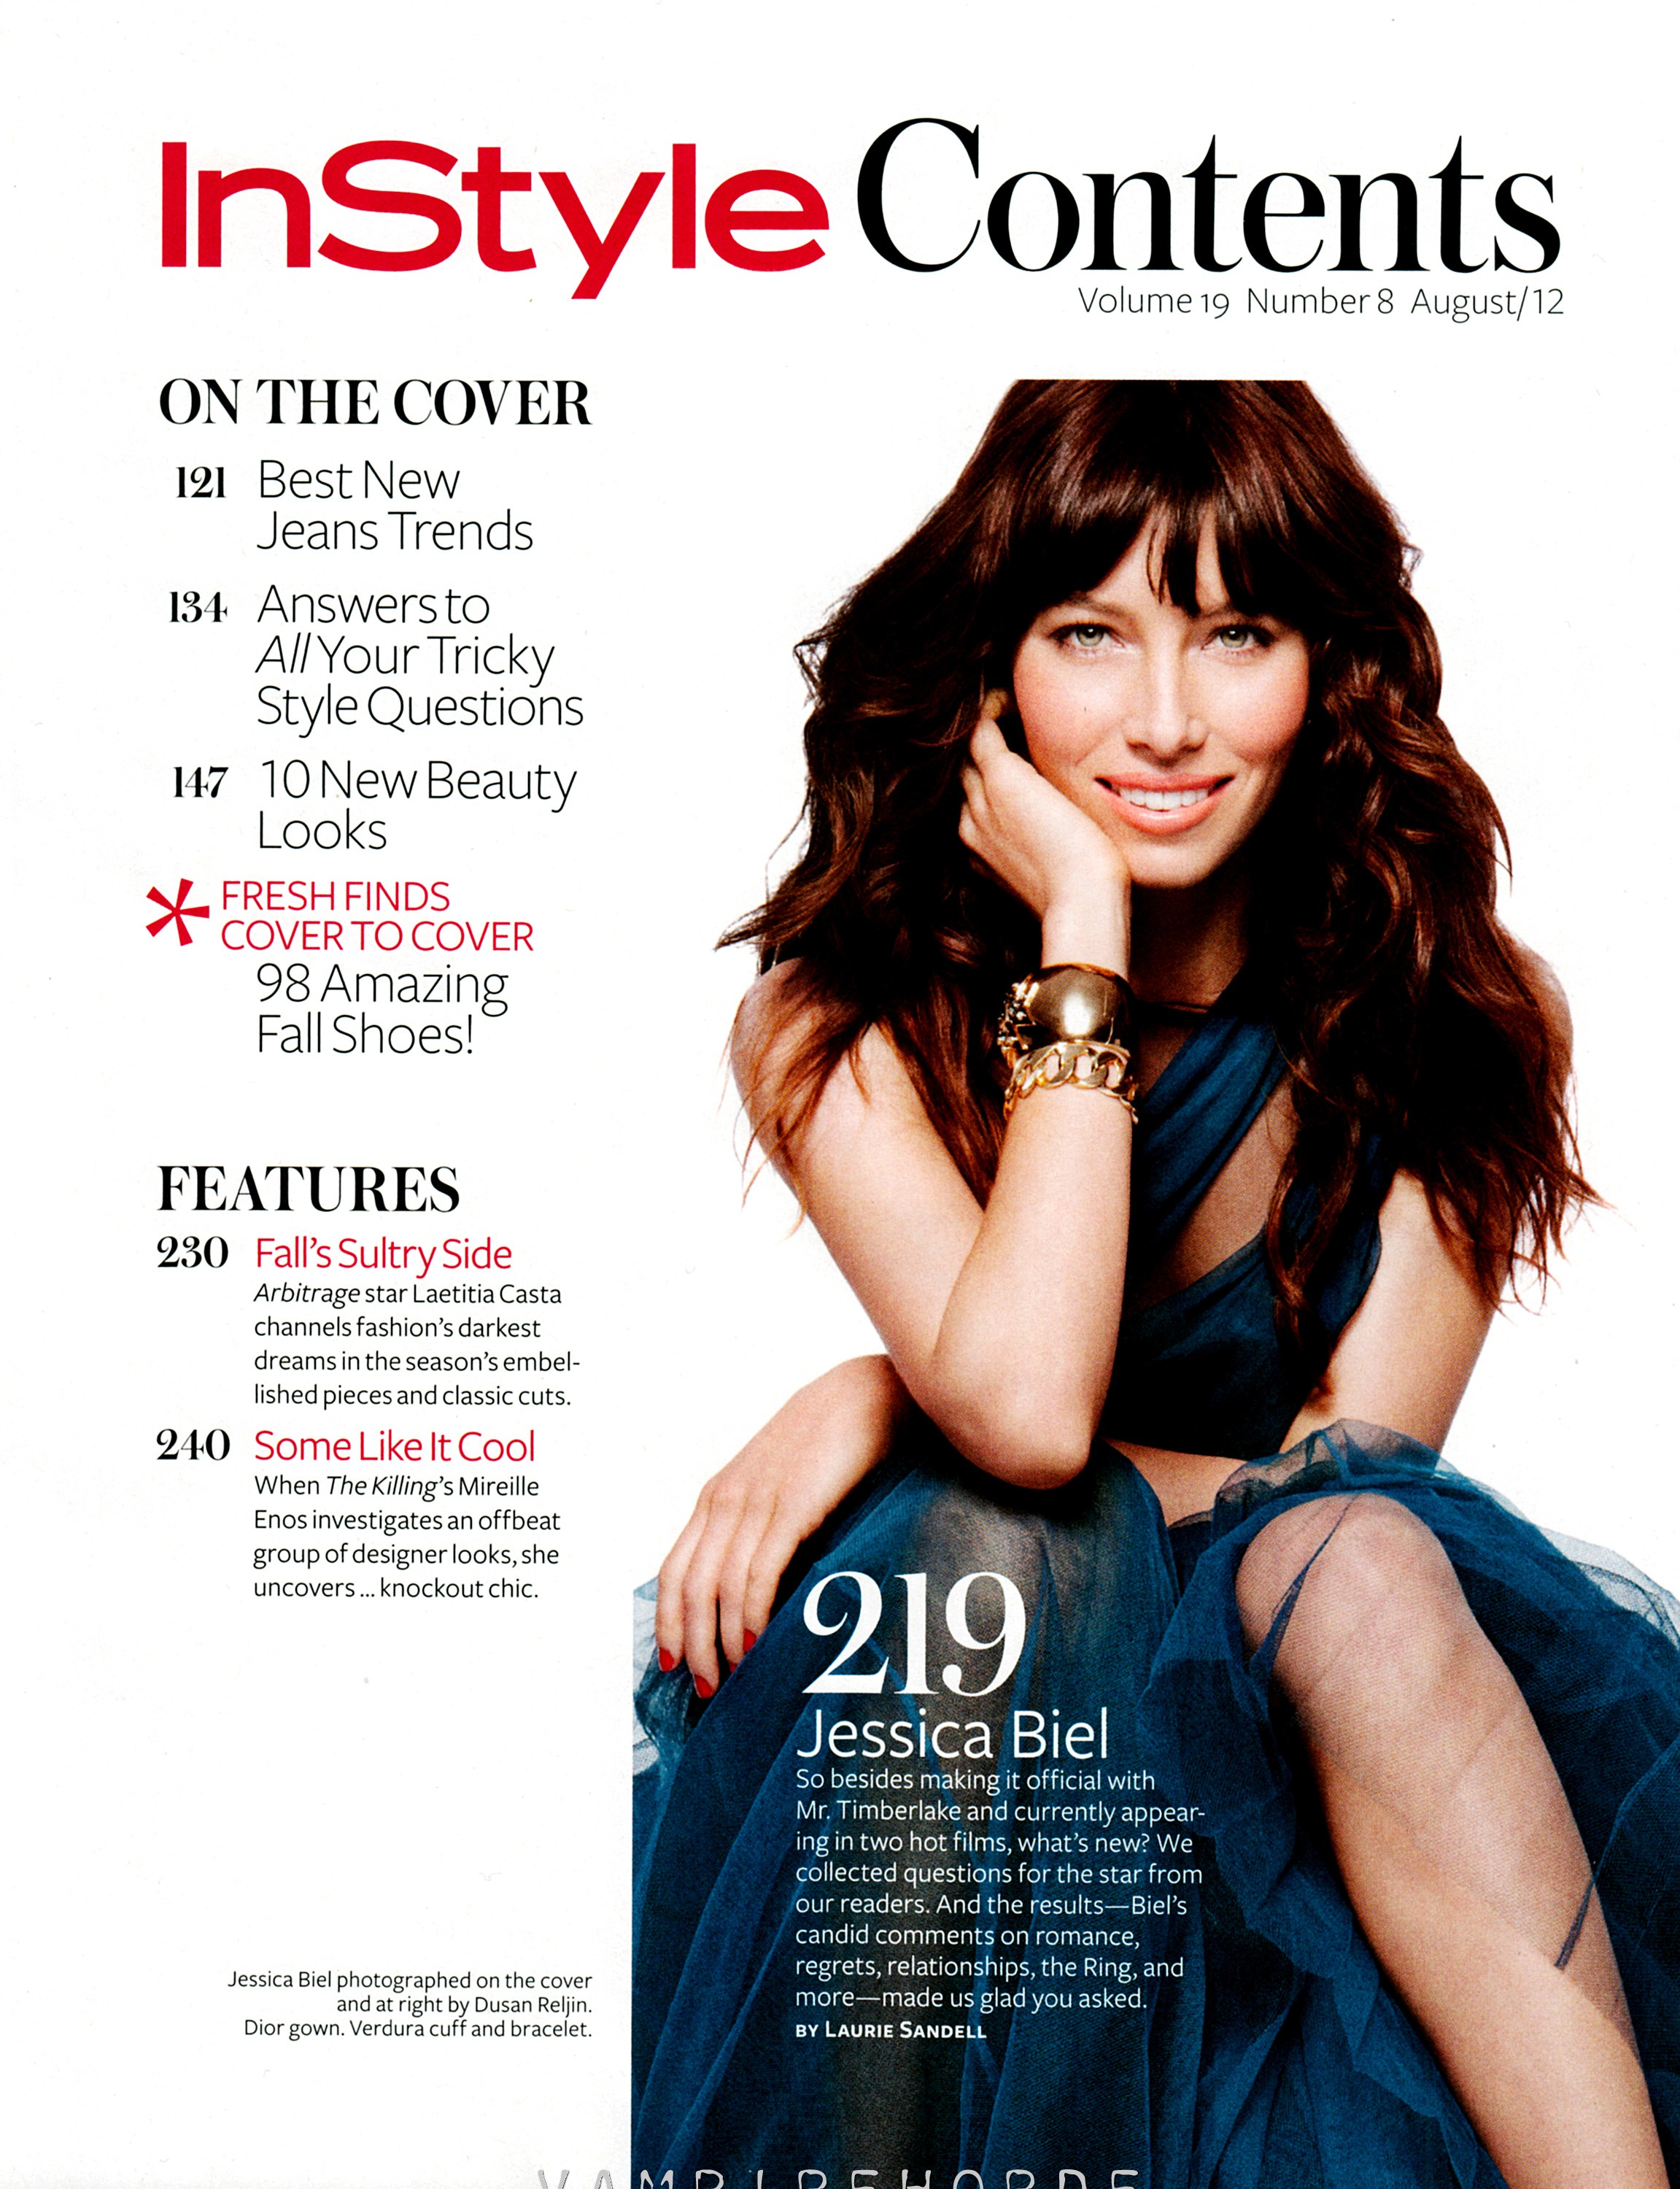 446266823_fashion_scans_remastered_jessica_biel_instyle_usa_aughust_2012_scanned_by_vampirehorde_hq_2_122_502lo.jpg